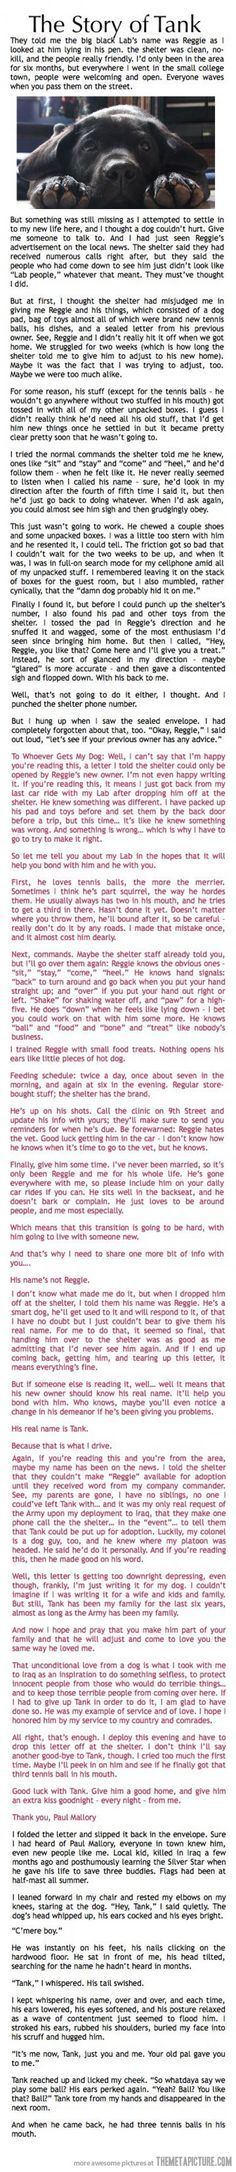 This made me cry!! :(   Dogs are such loyal friends.